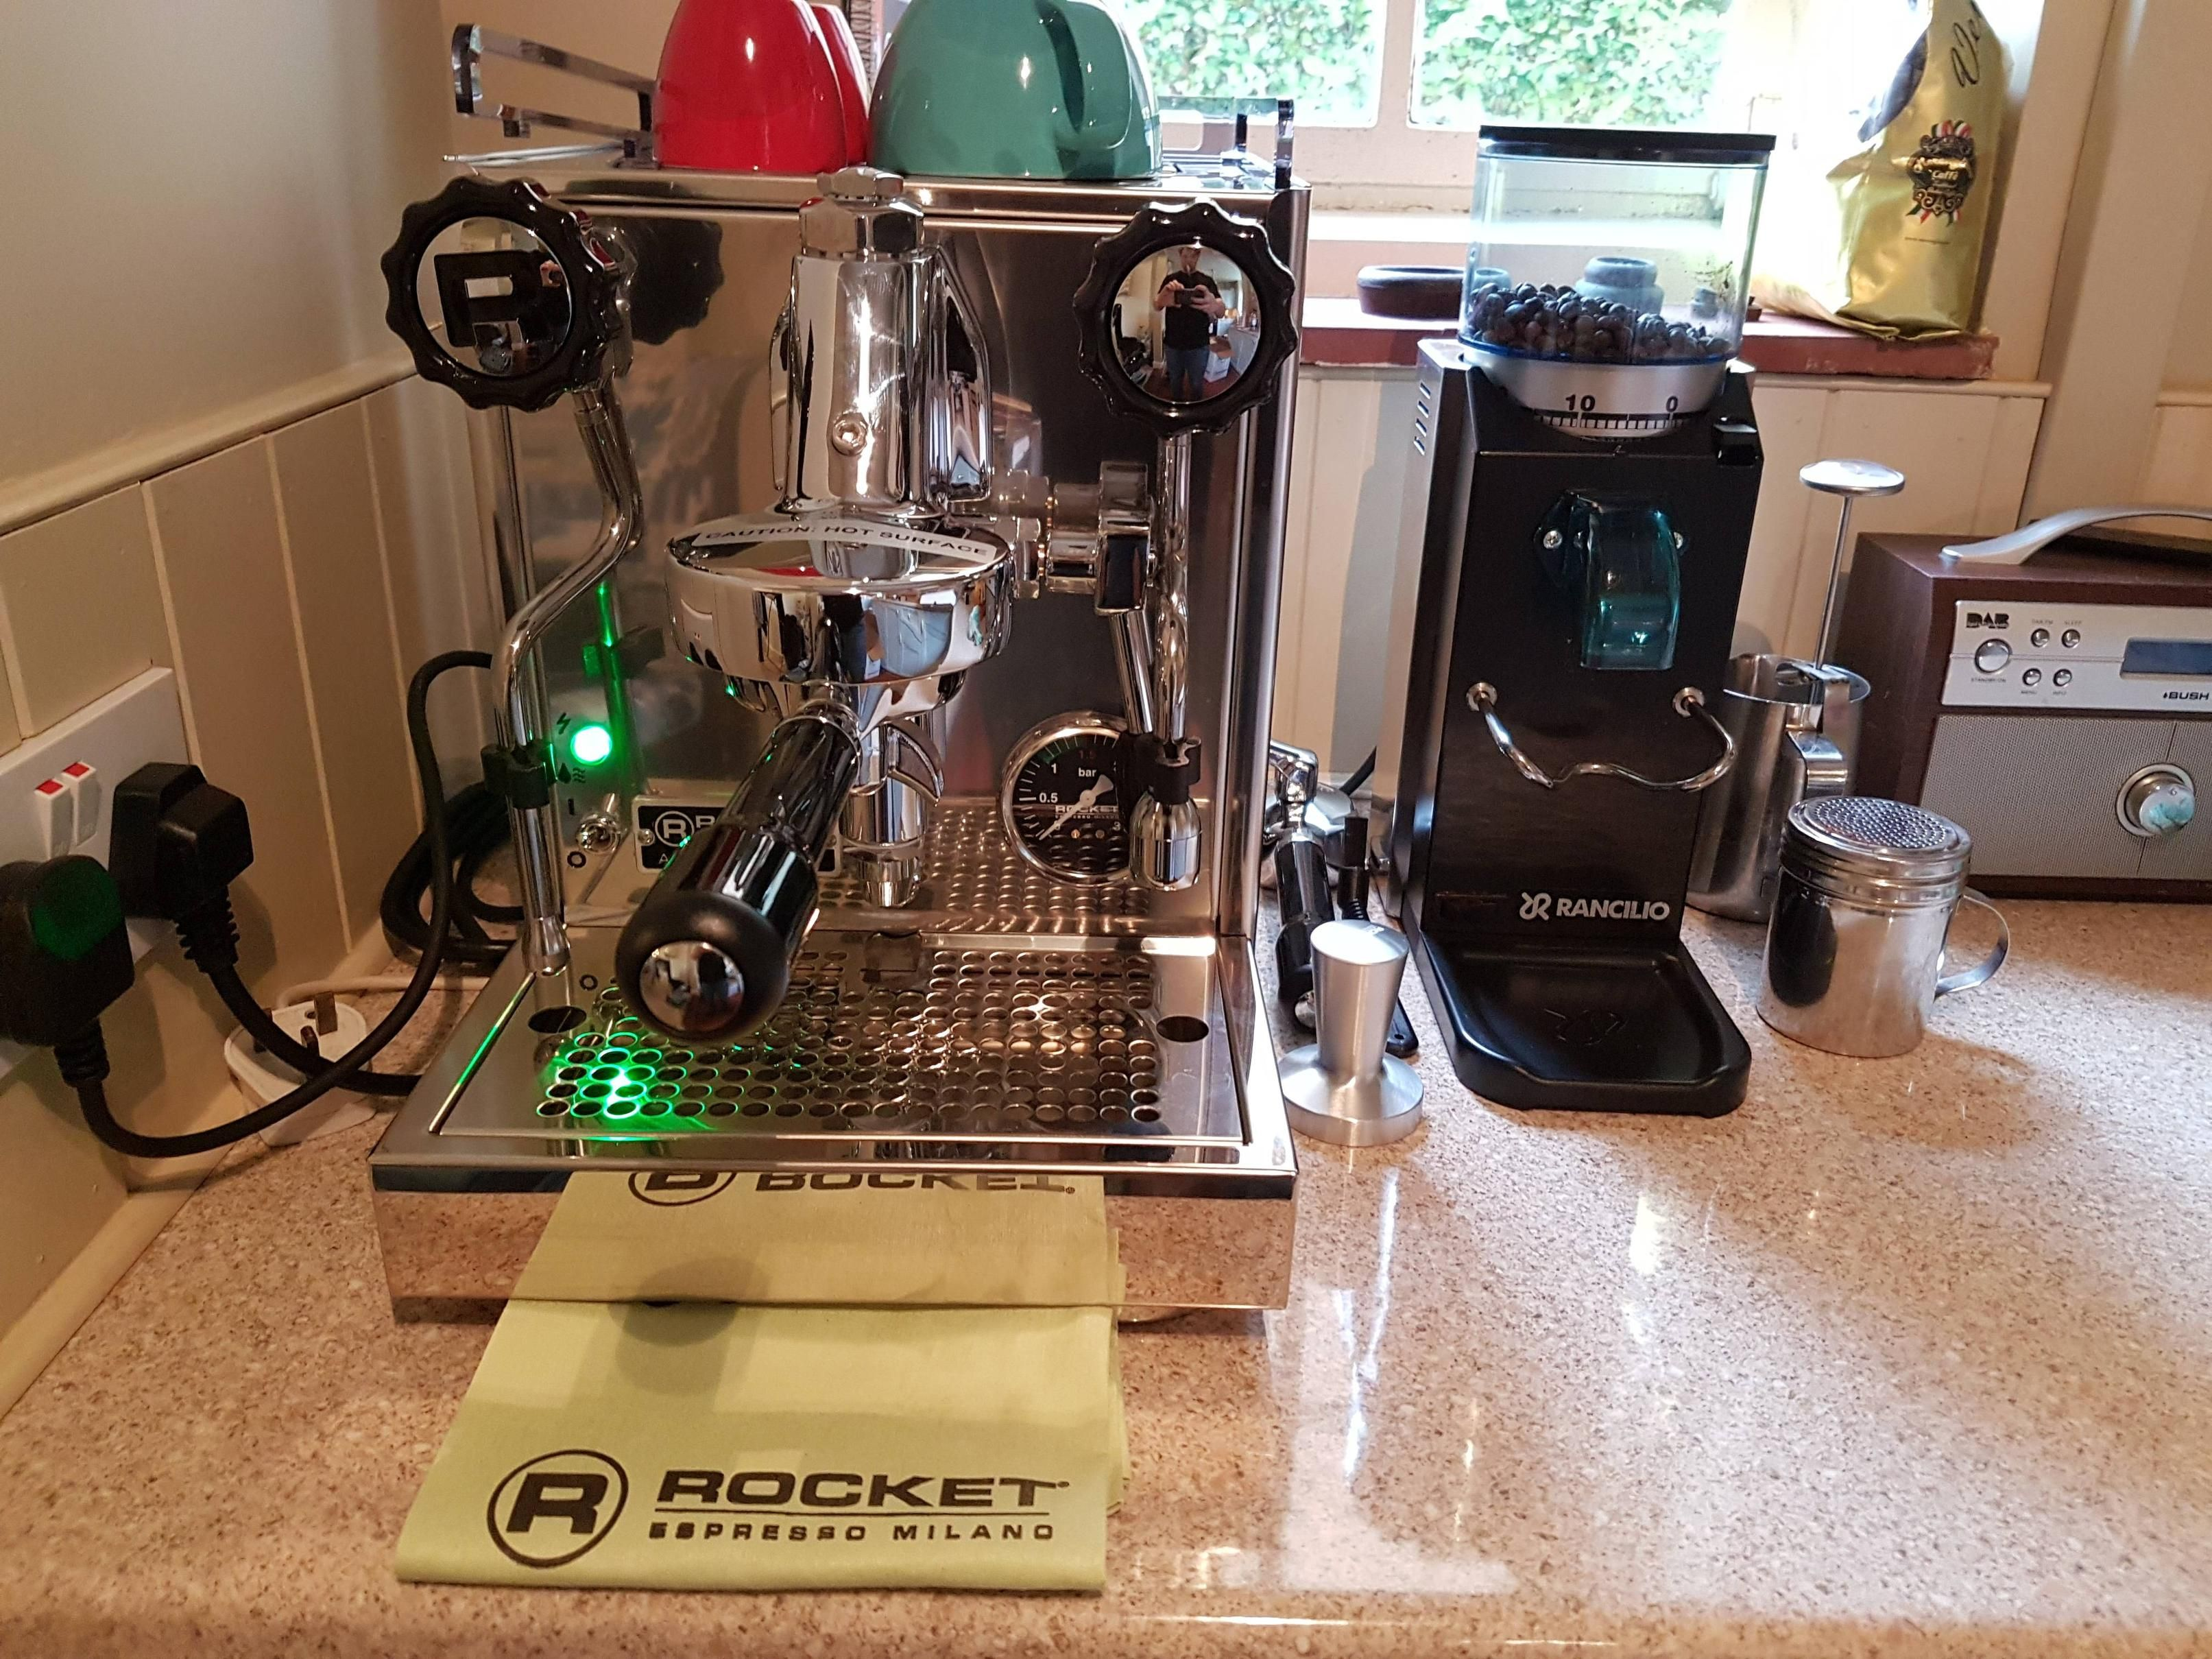 New Set Up At Home Rocket Appartamento And Rancilio Rocky Grinder